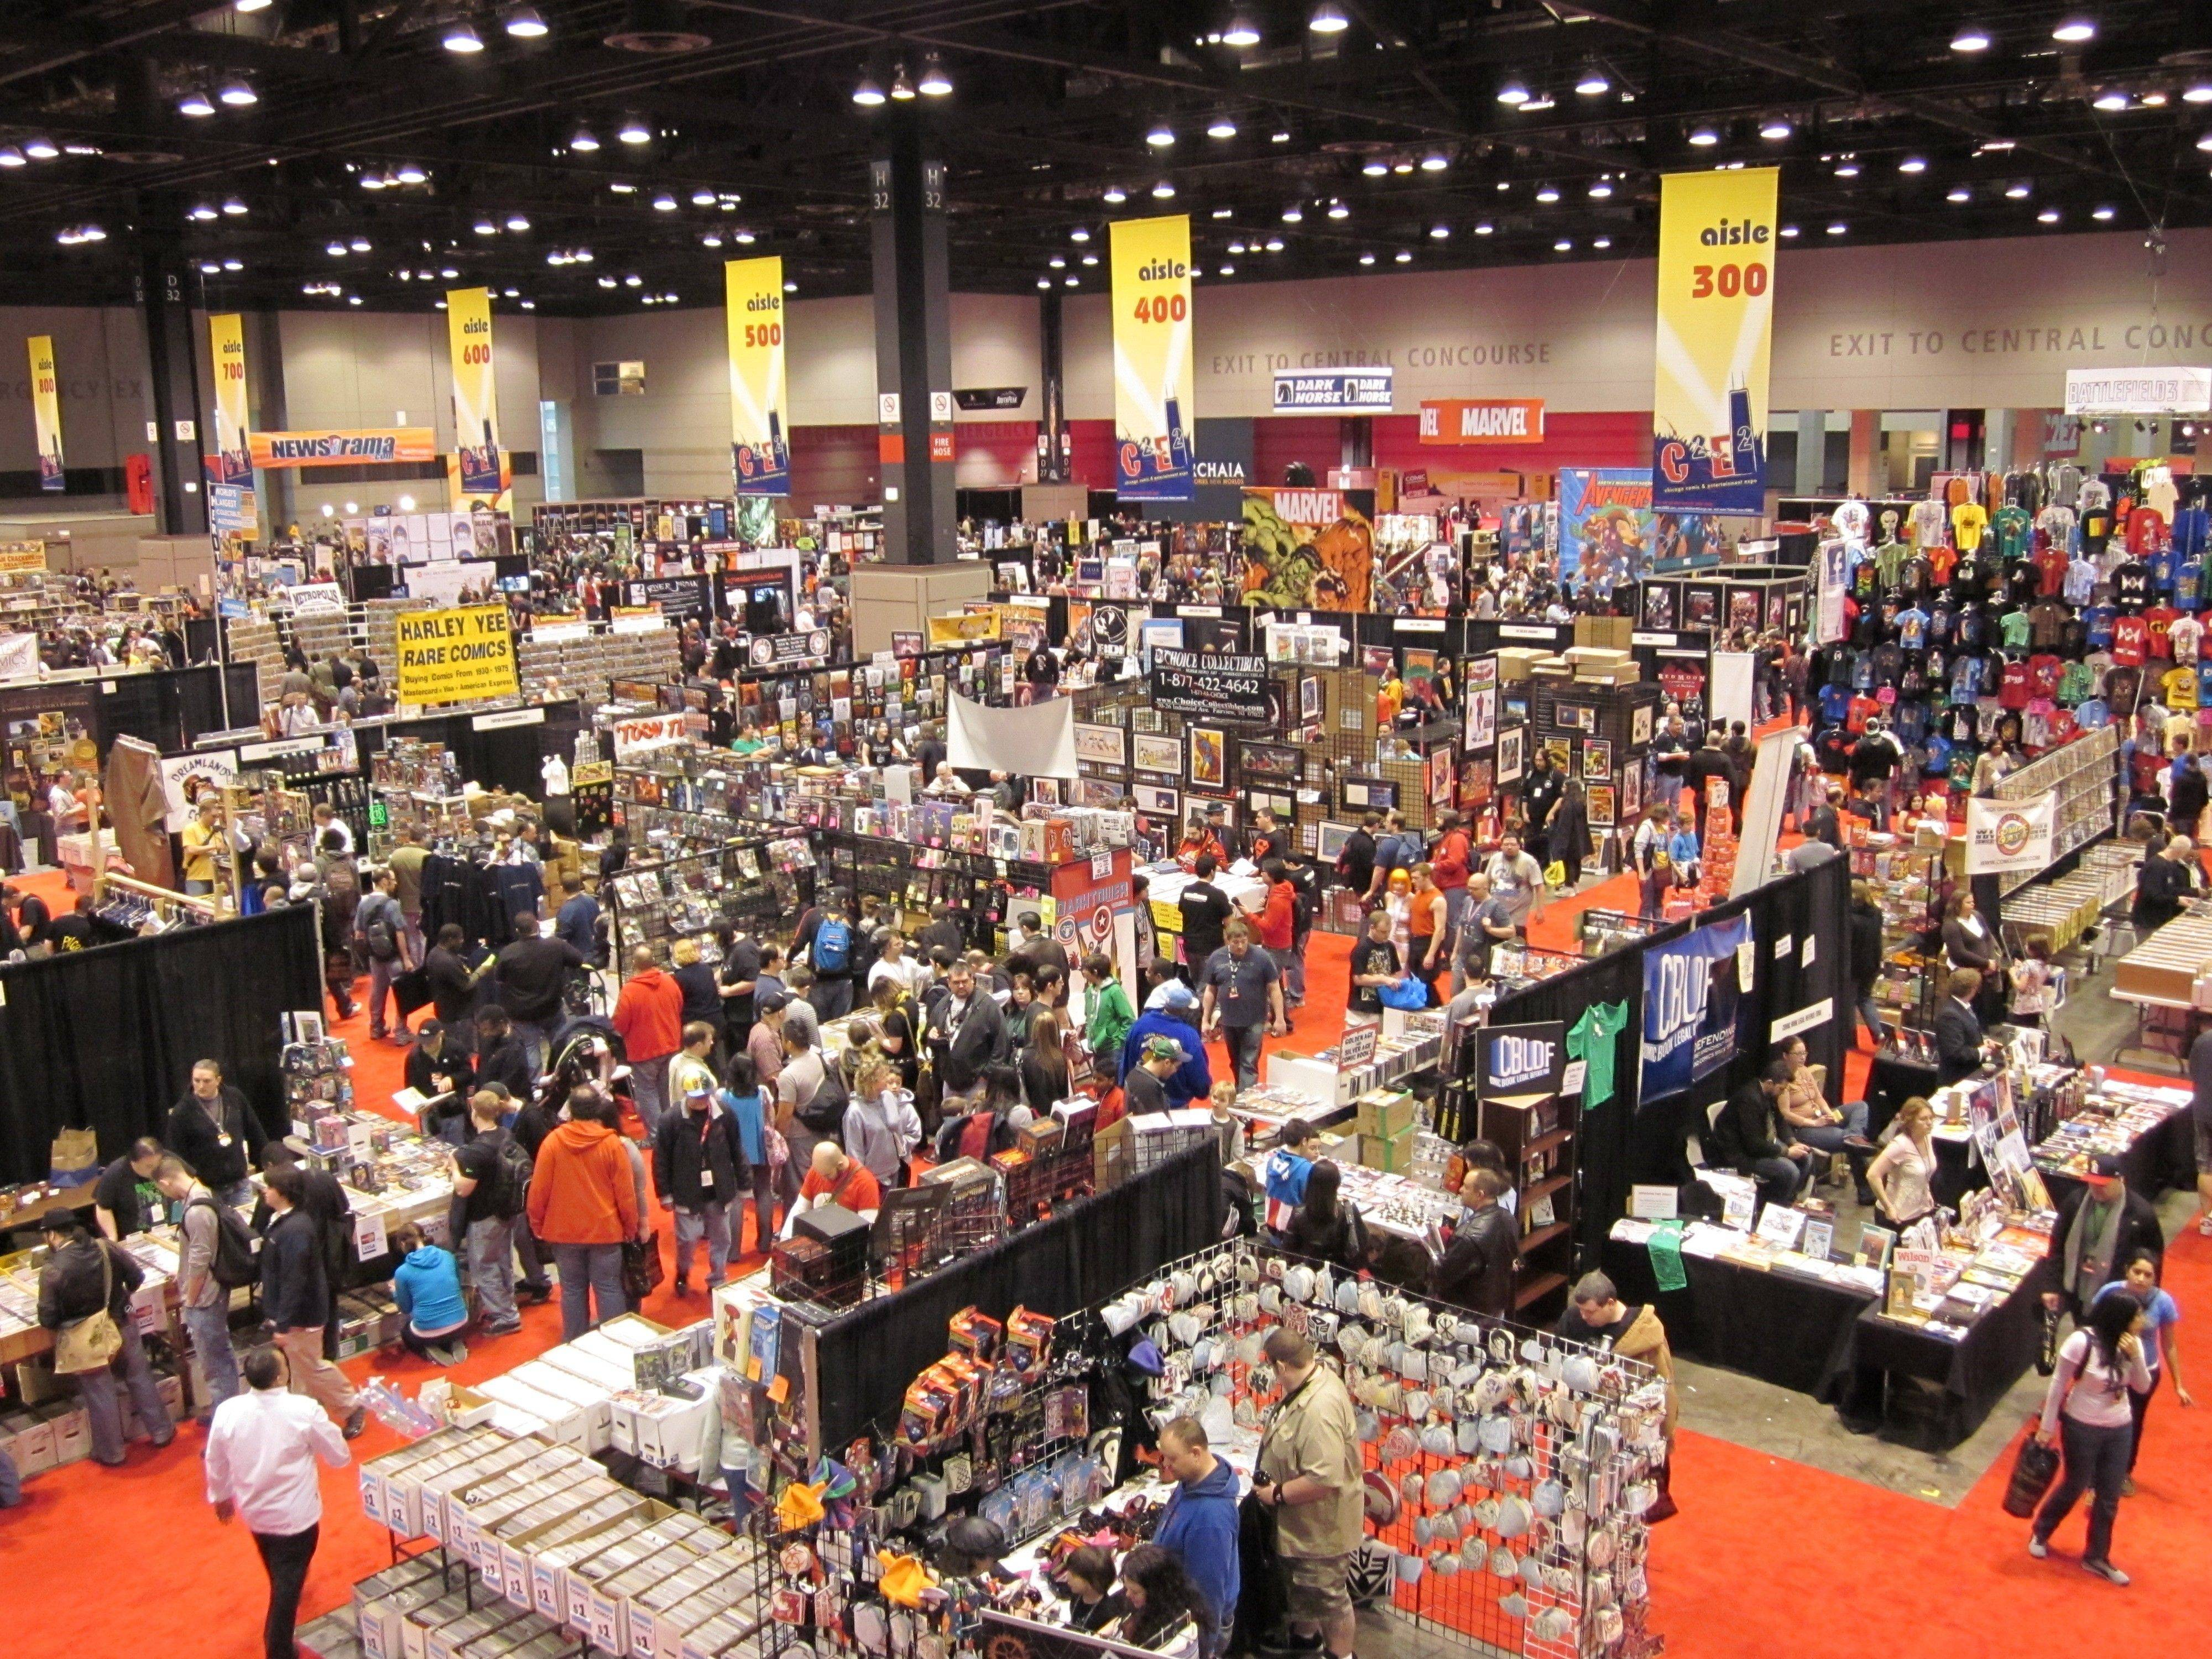 The floor of the C2E2 convention in Chicago featured comic books, toys and costumed fans.